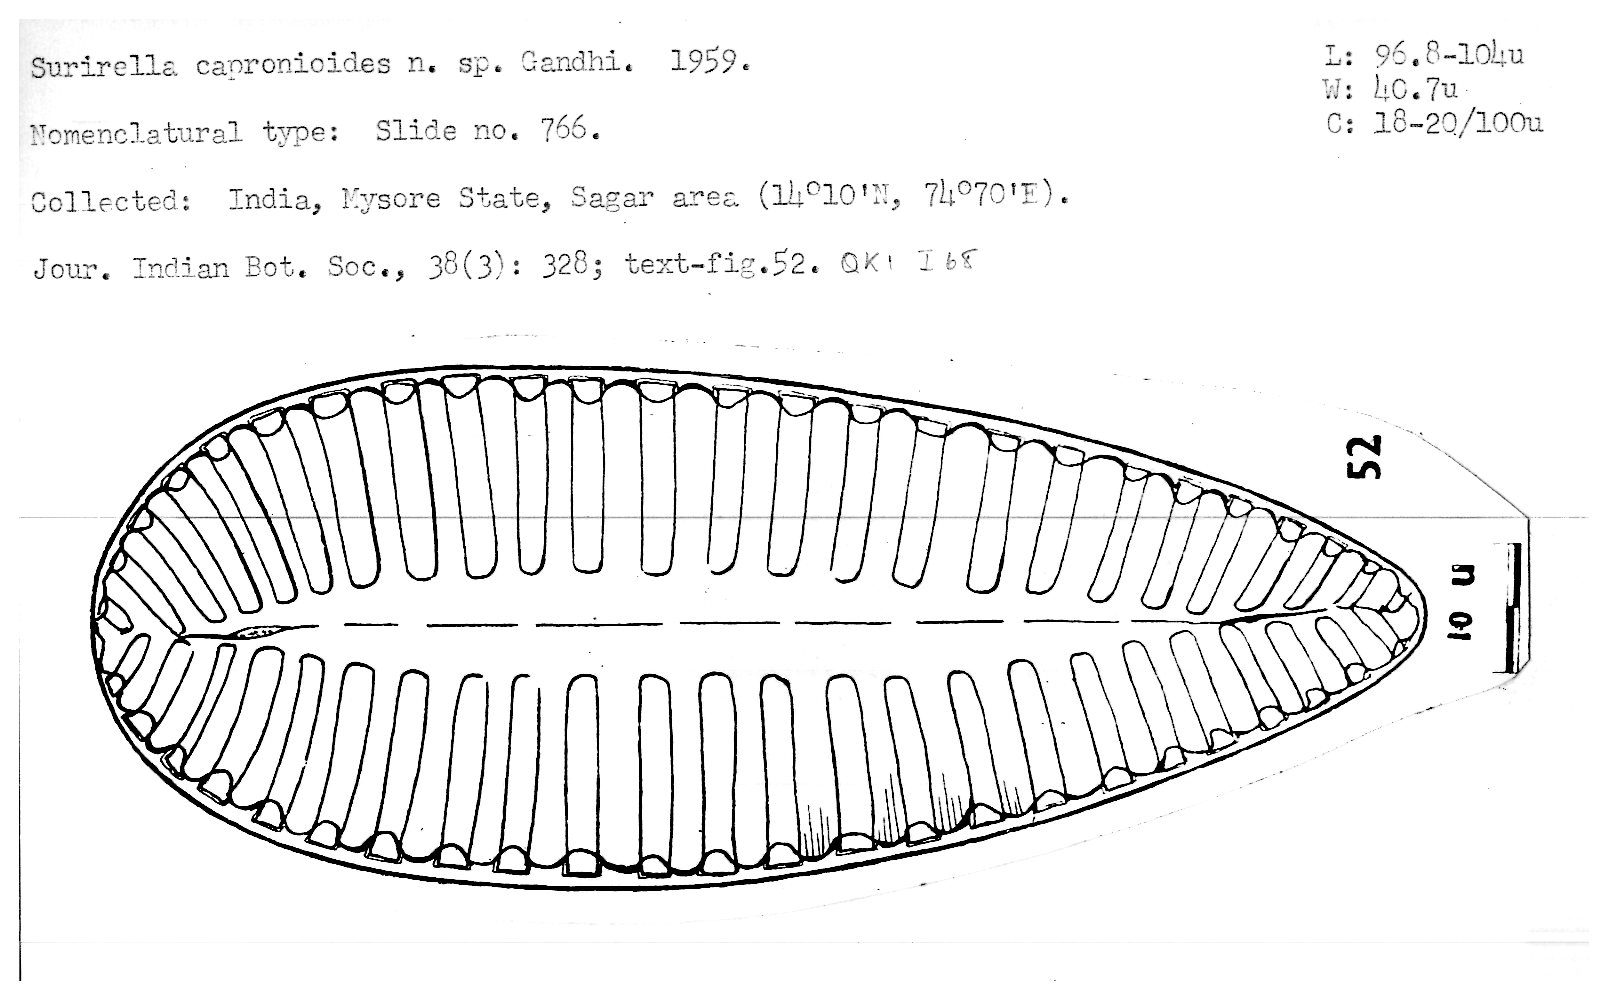 hight resolution of fresh water diatoms from sagar in the mysore state journal of the indian botanical society 38 3 305 331